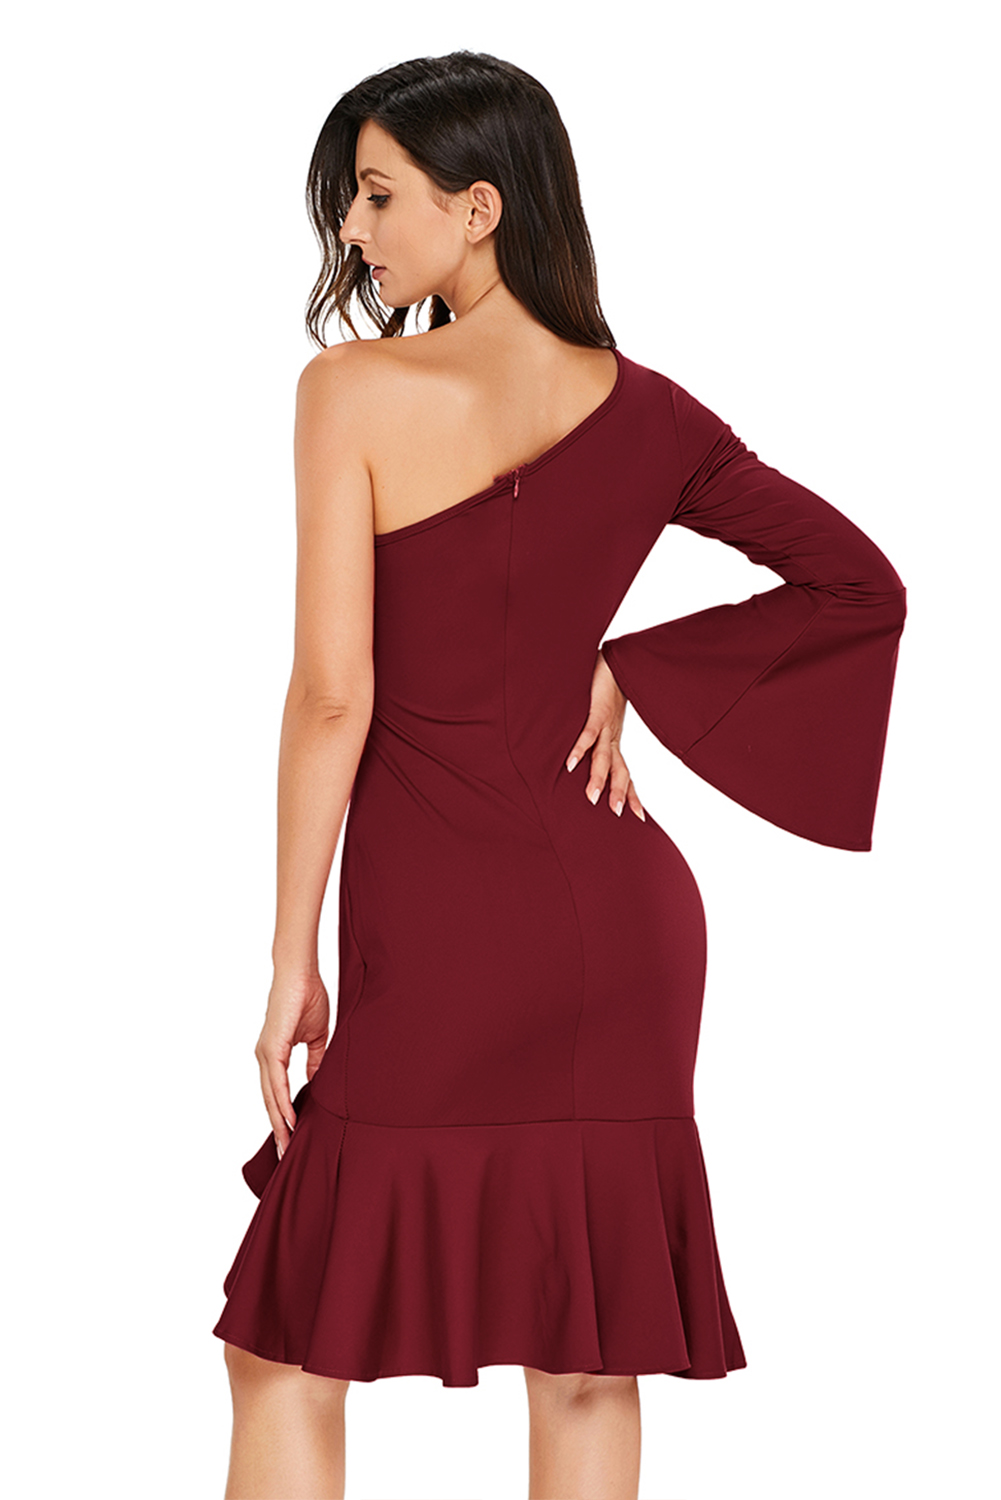 4ed34222a7 Twist and ruffle accent one shoulder prom dress long sleeve party ...